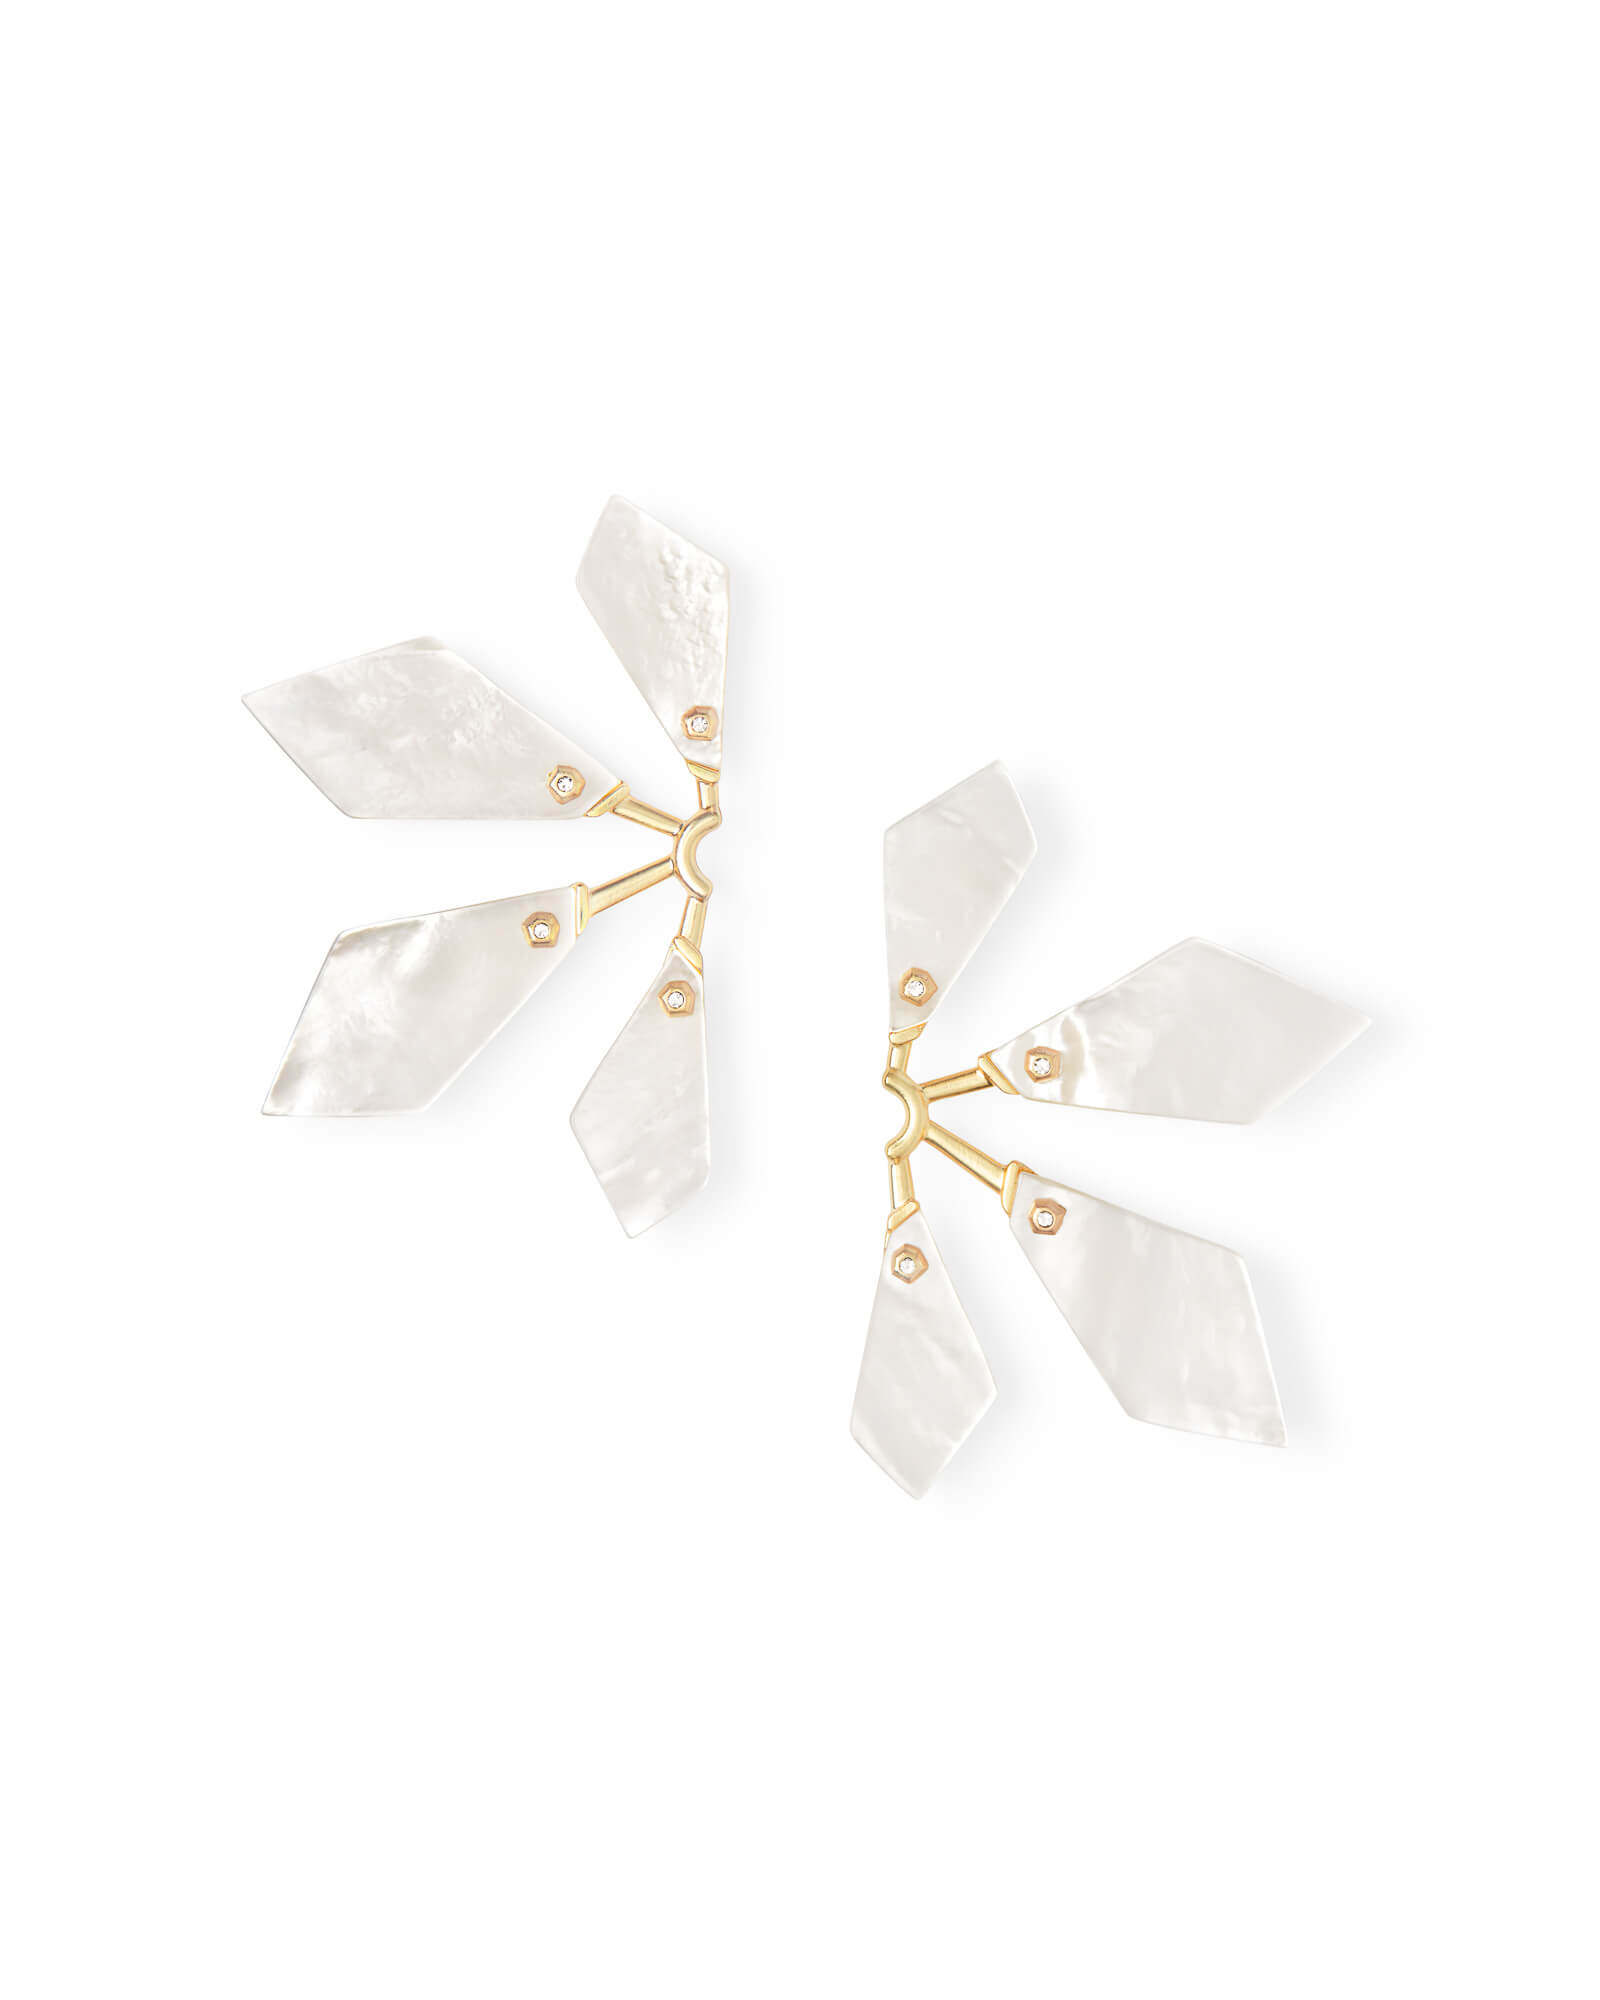 Malika Gold Statement Earrings in Ivory Mother-of-Pearl